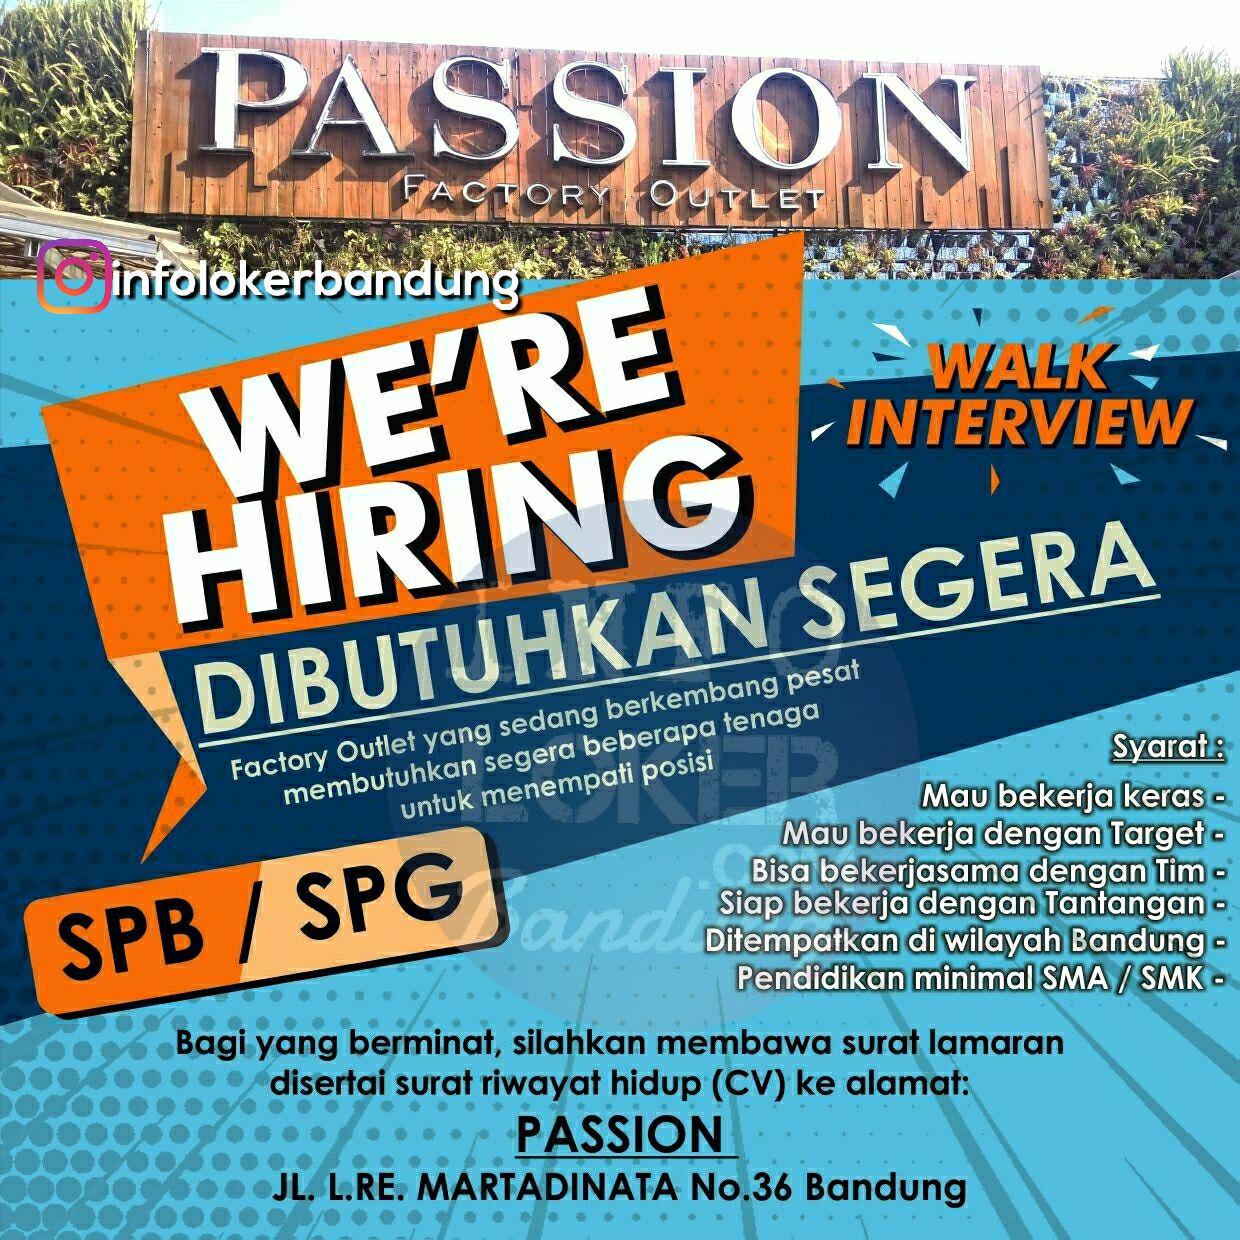 Lowongan Kerja Passion Factory Outlet Bandung ( Walk In Interview )